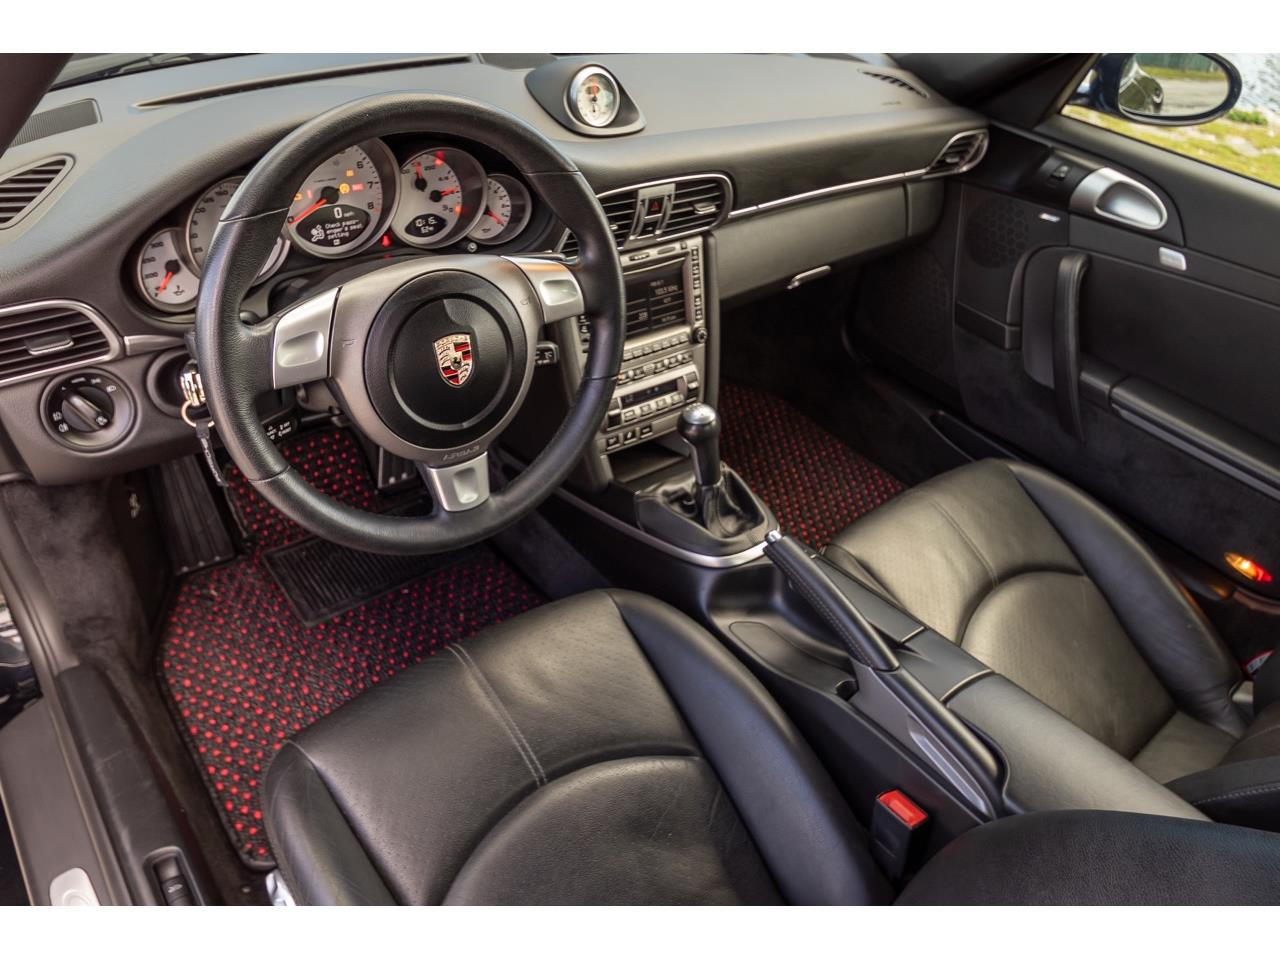 Large Picture of '08 911 Carrera S located in California Offered by Mohr Imports Inc. - Q67H